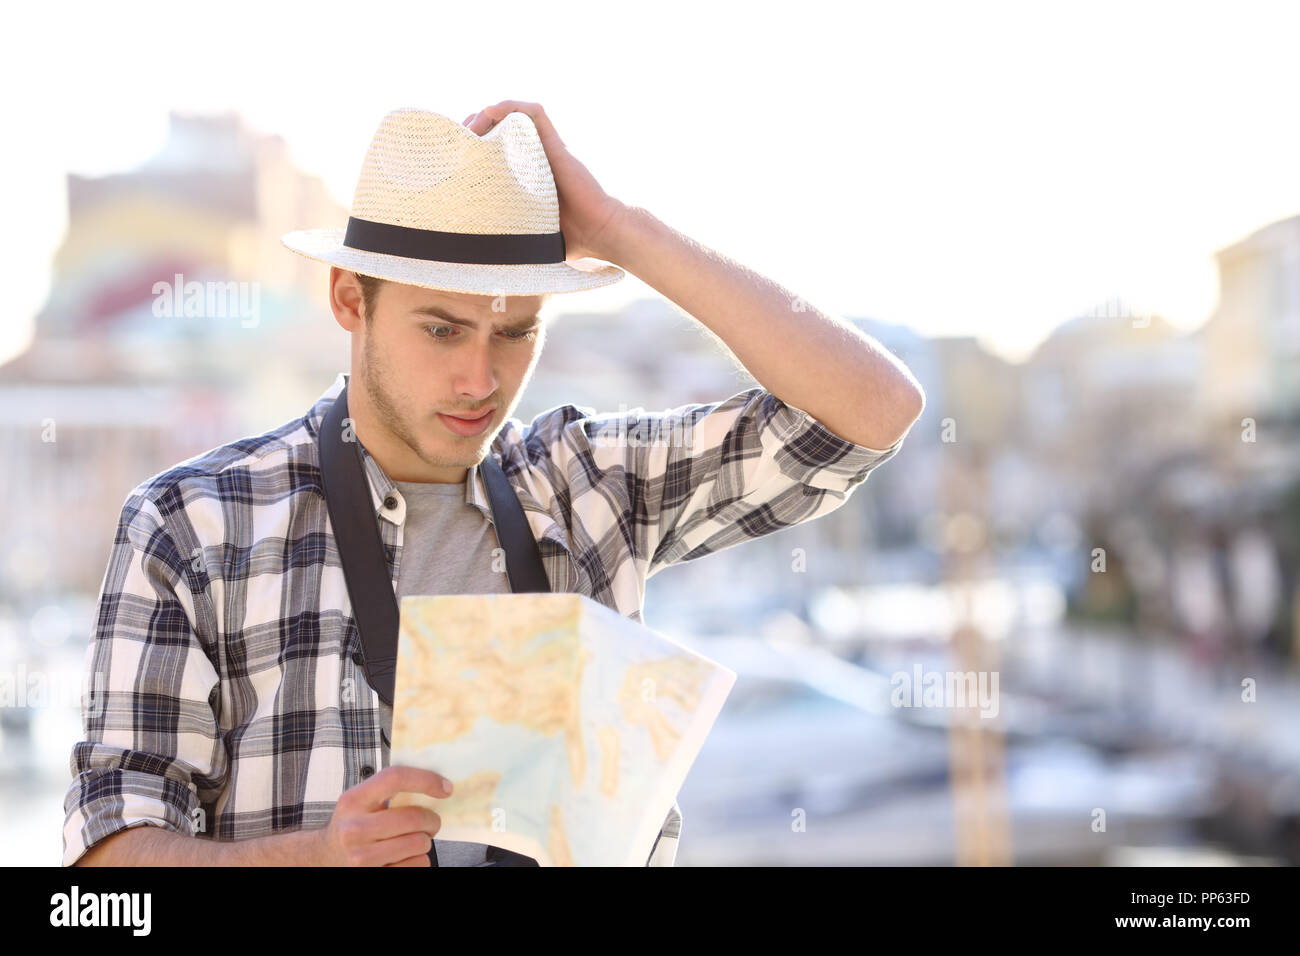 Lost tourist consulting a confusing guide in a coast town street on vacation - Stock Image